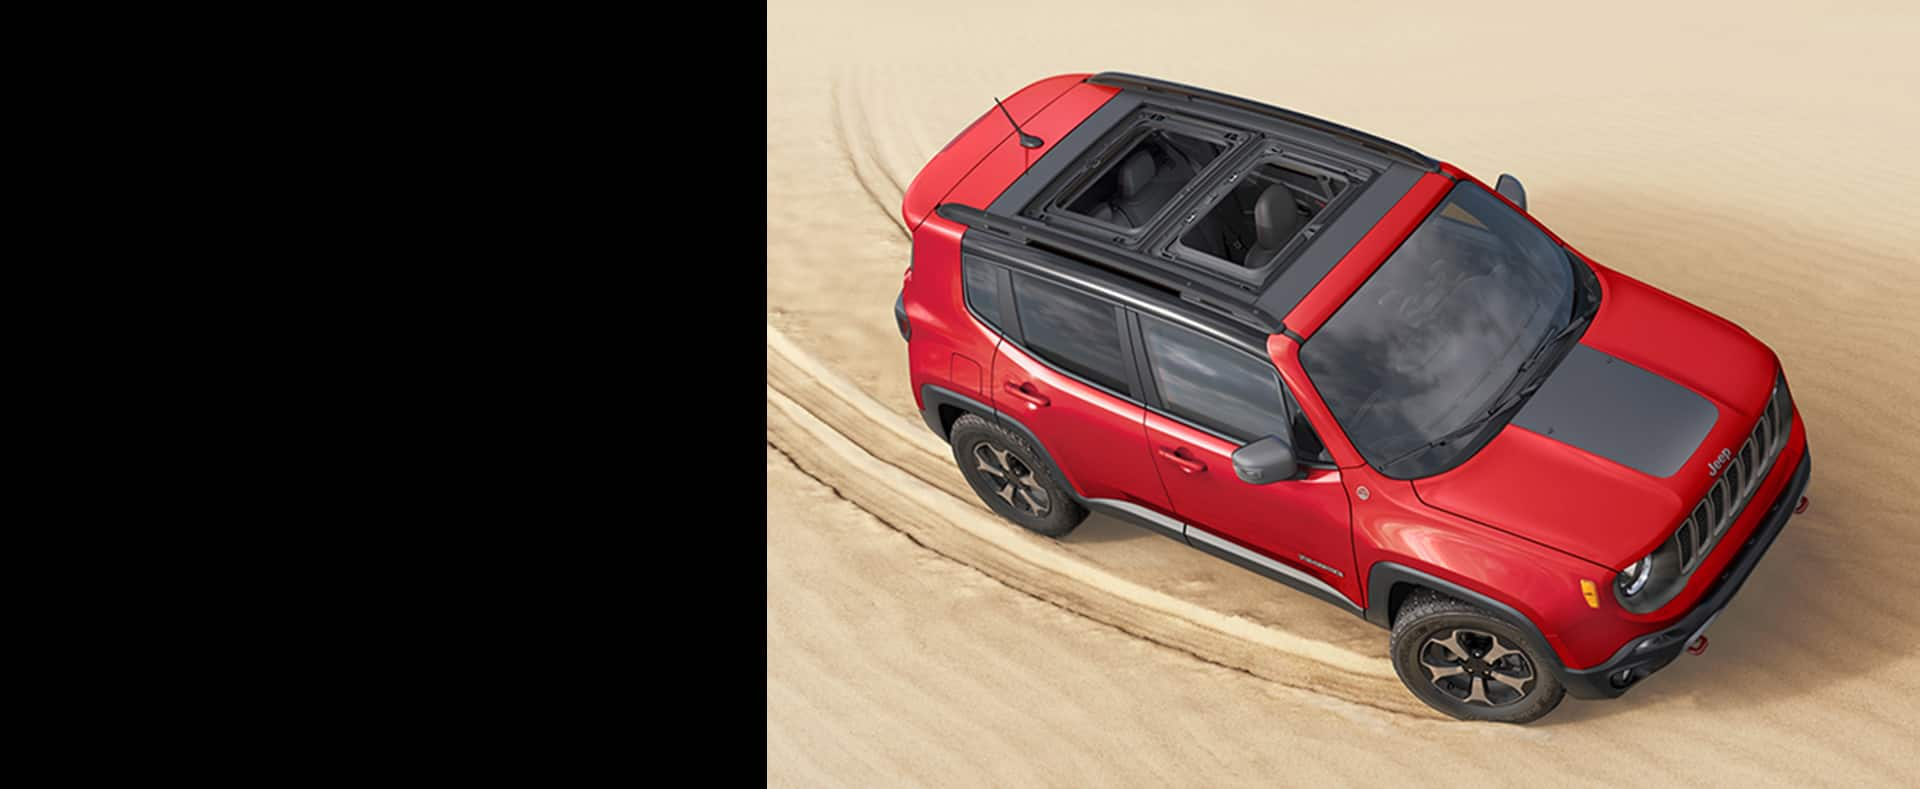 2020 Jeep Renegade leaves tracks in the sand behind it as it makes a sharp turn.